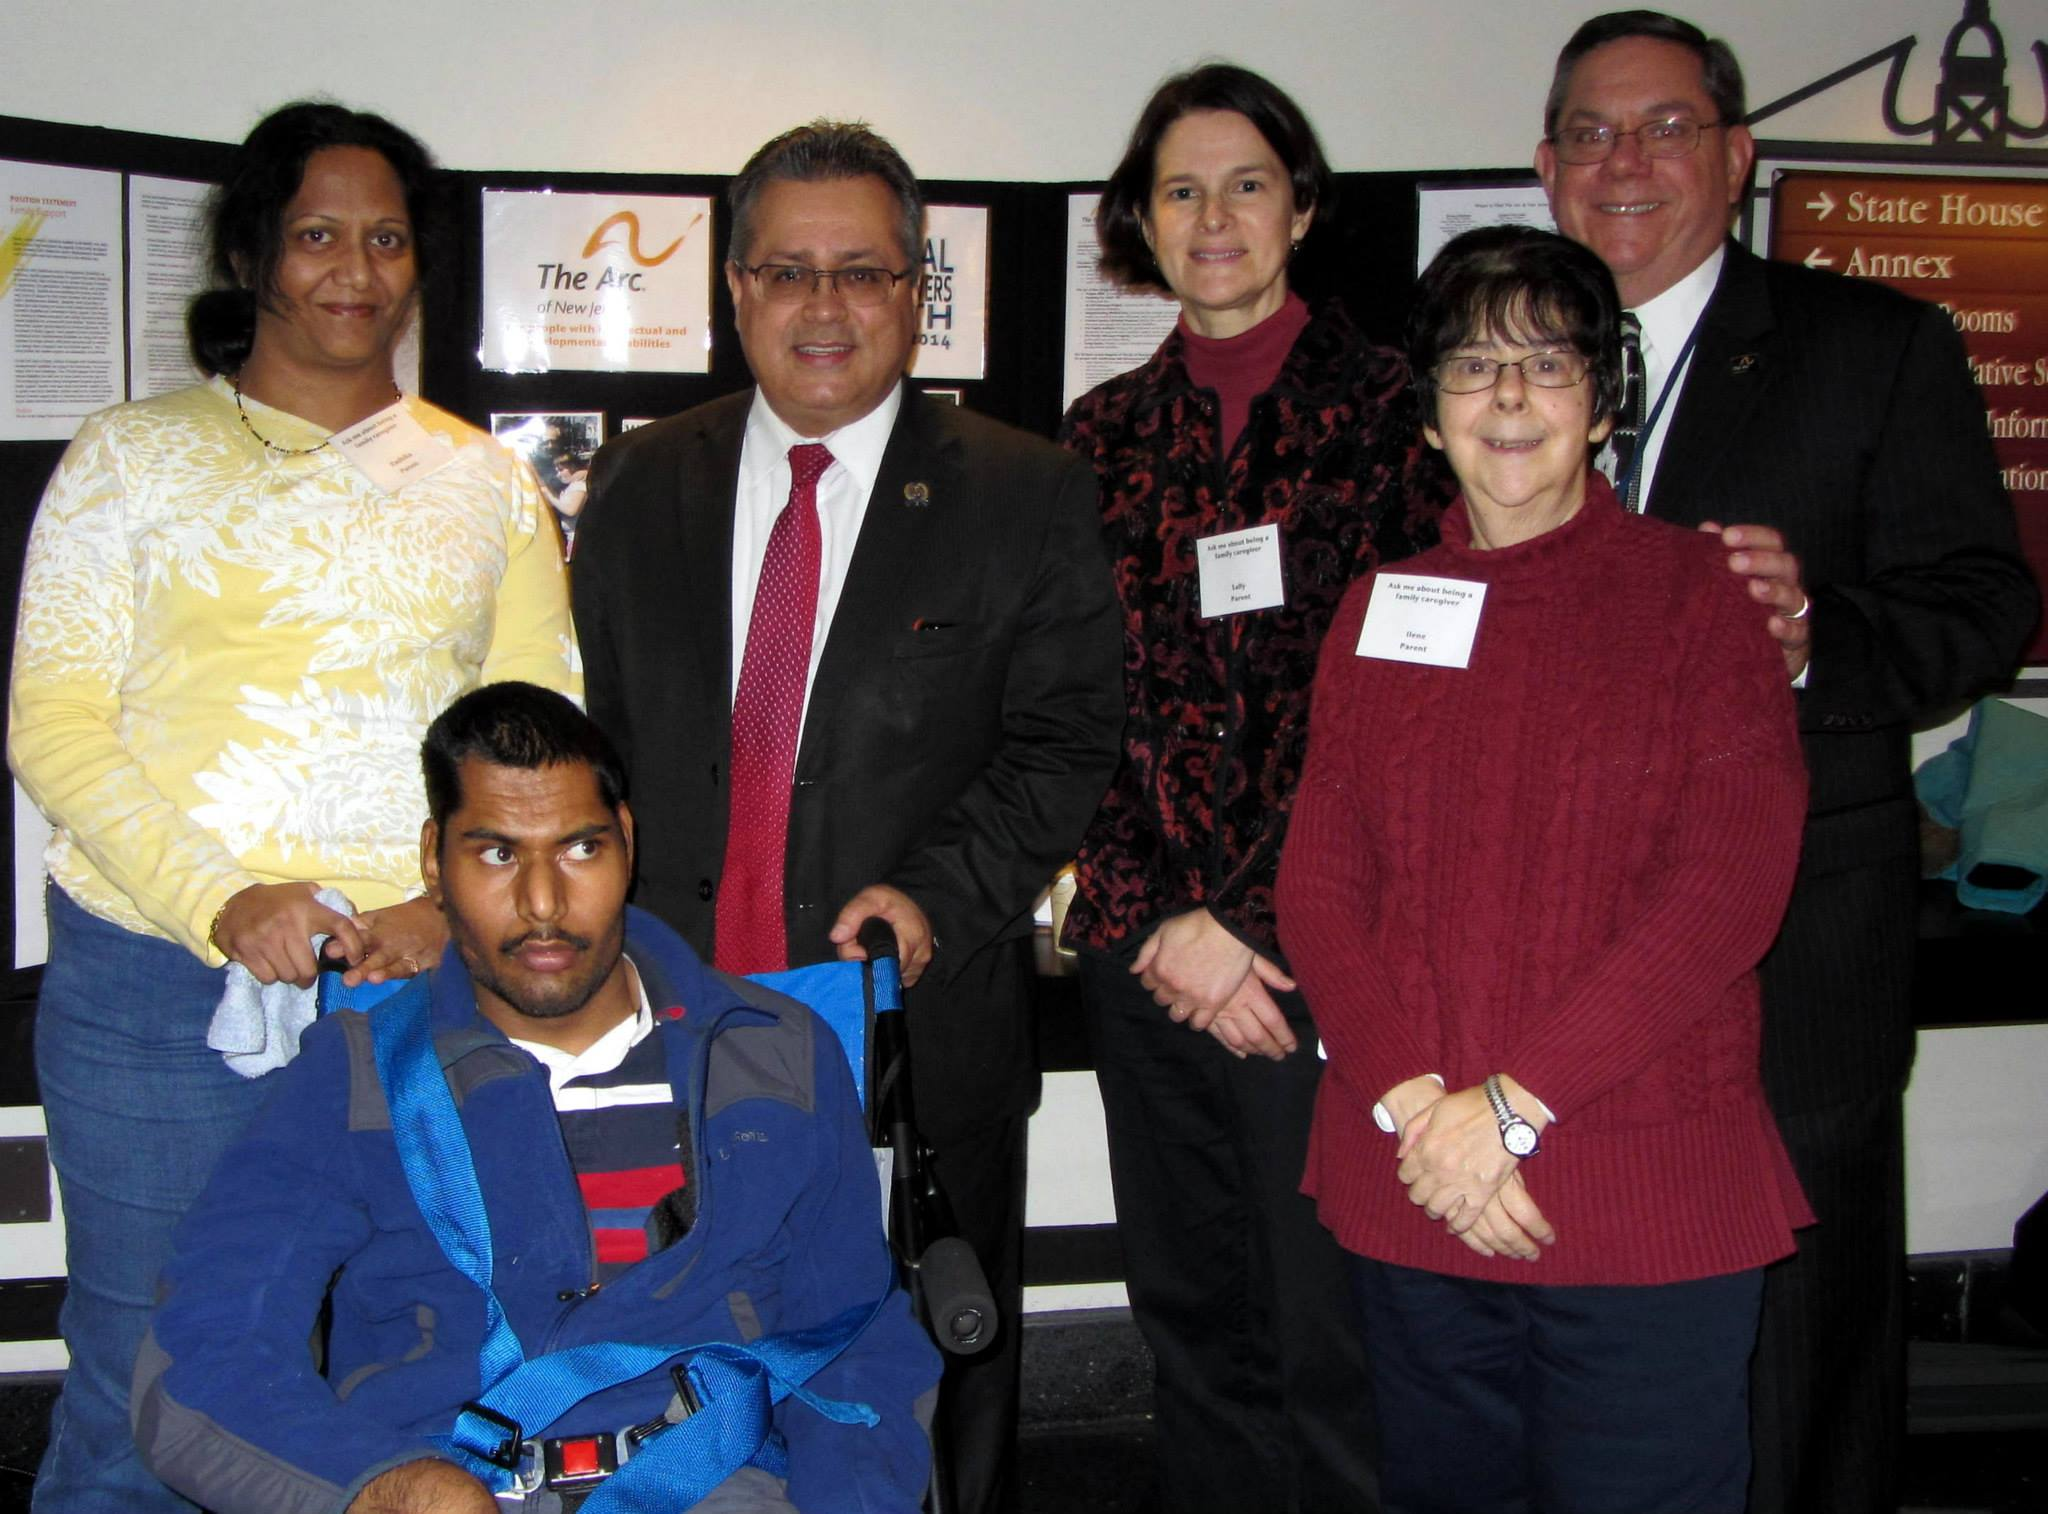 Family Caregivers Month Event at the State House